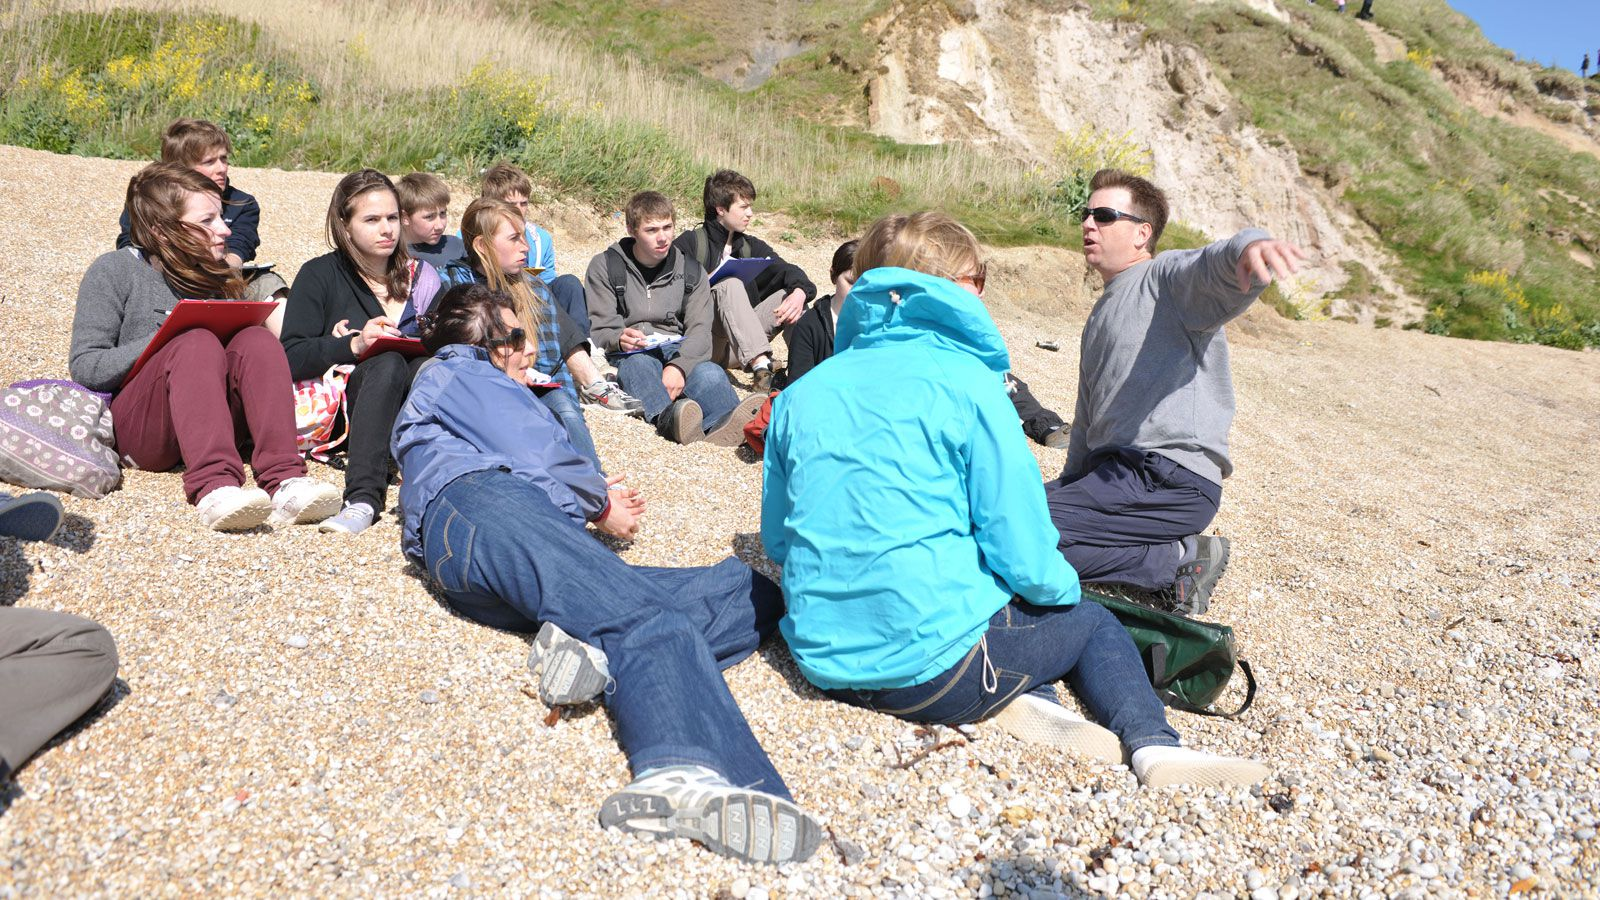 geology coursework a level Geology a level is one of the new linear a levels offered by stoke-on-trent sixth form college find out more information about what the course involves.